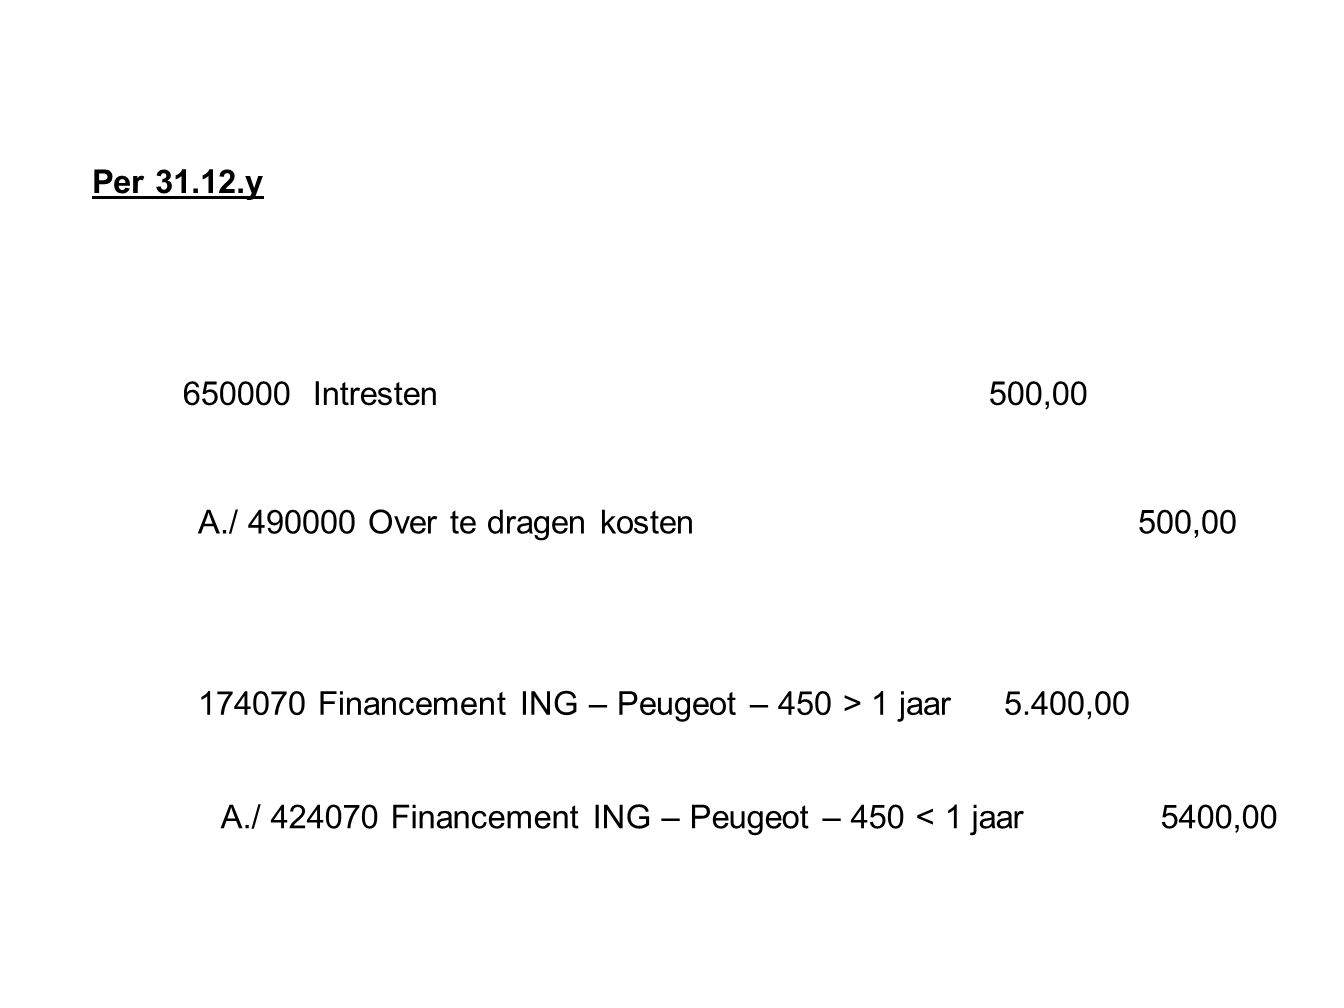 Per y Intresten 500,00. A./ Over te dragen kosten 500, Financement ING – Peugeot – 450 > 1 jaar 5.400,00.